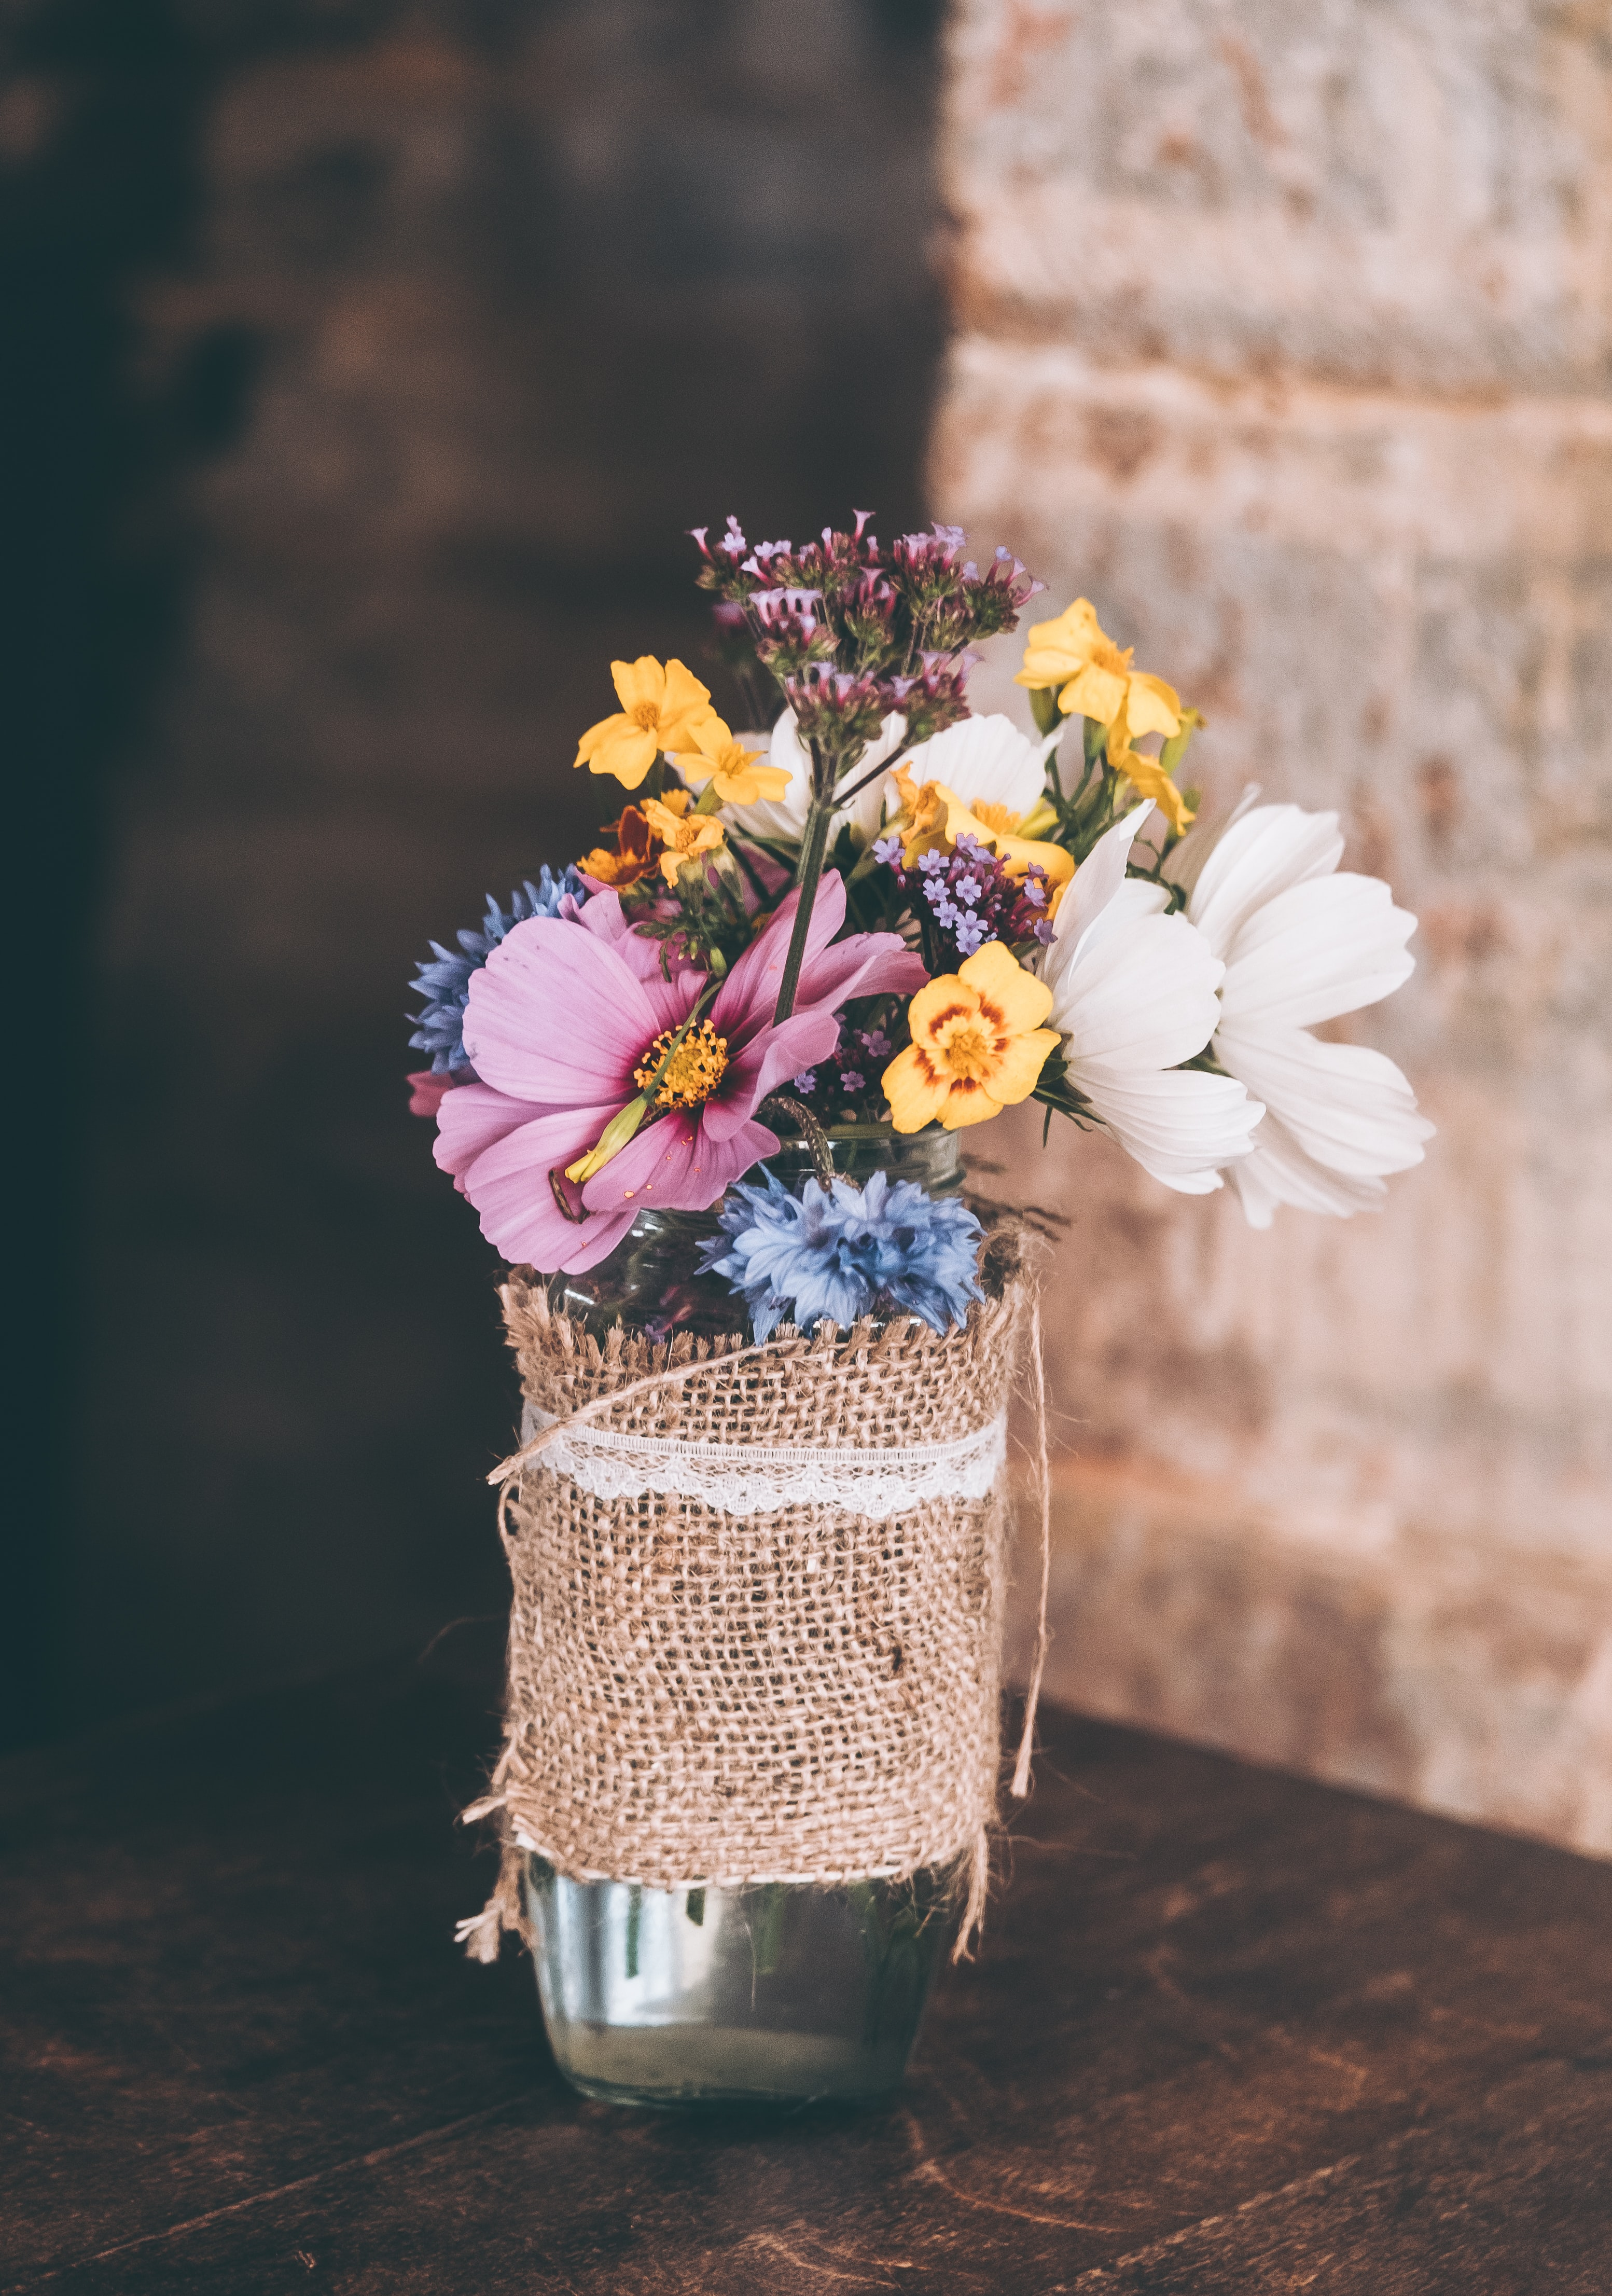 A bouquet of various flowers in a glass vase on a wooden surface